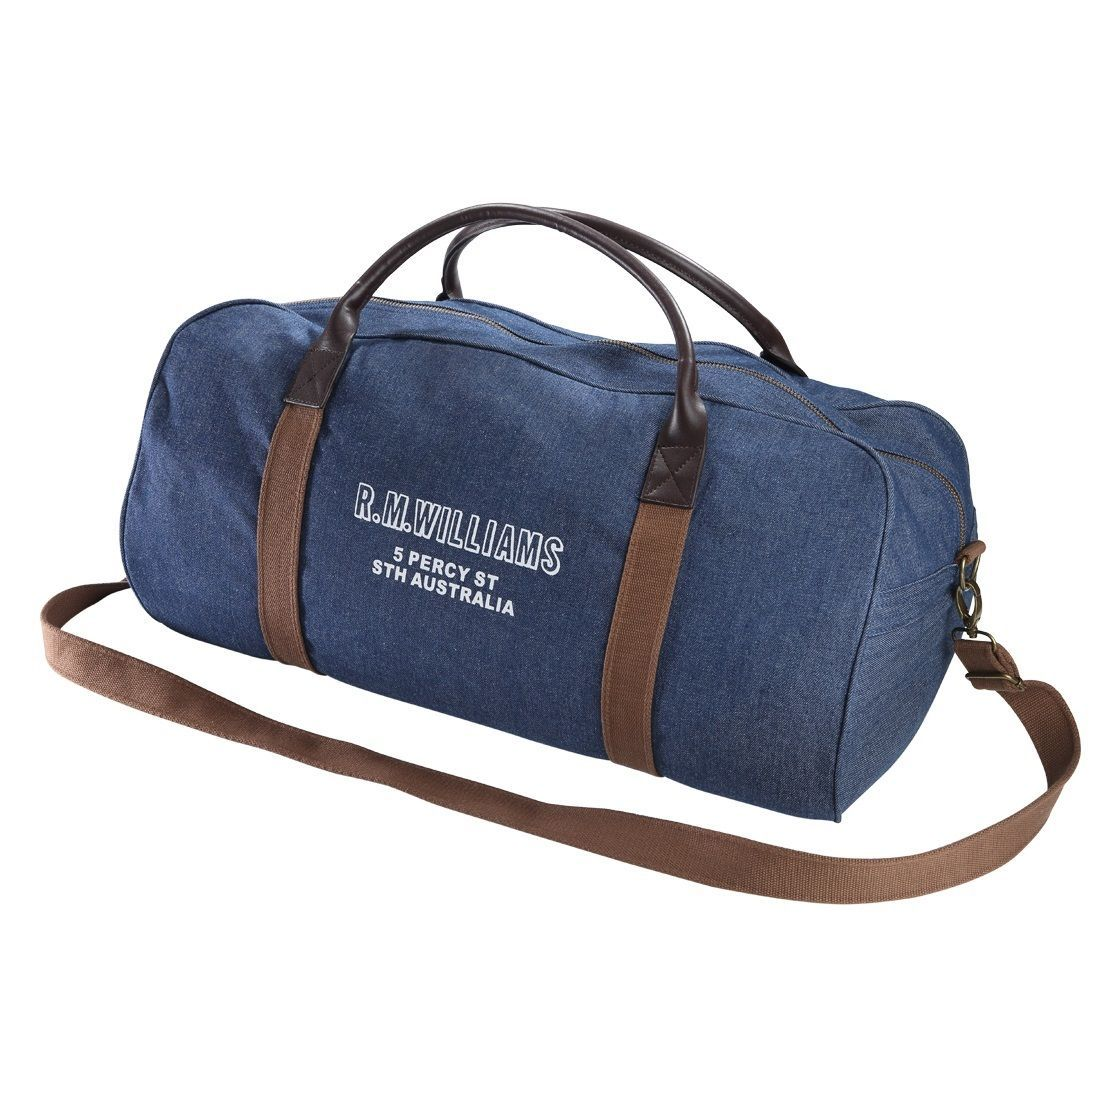 This Great Looking Rm Williams Bag Is Made From Heavyweight Indigo Denim And Canvas Straps With Soft Leather Handles Also Features An External Side Pocket